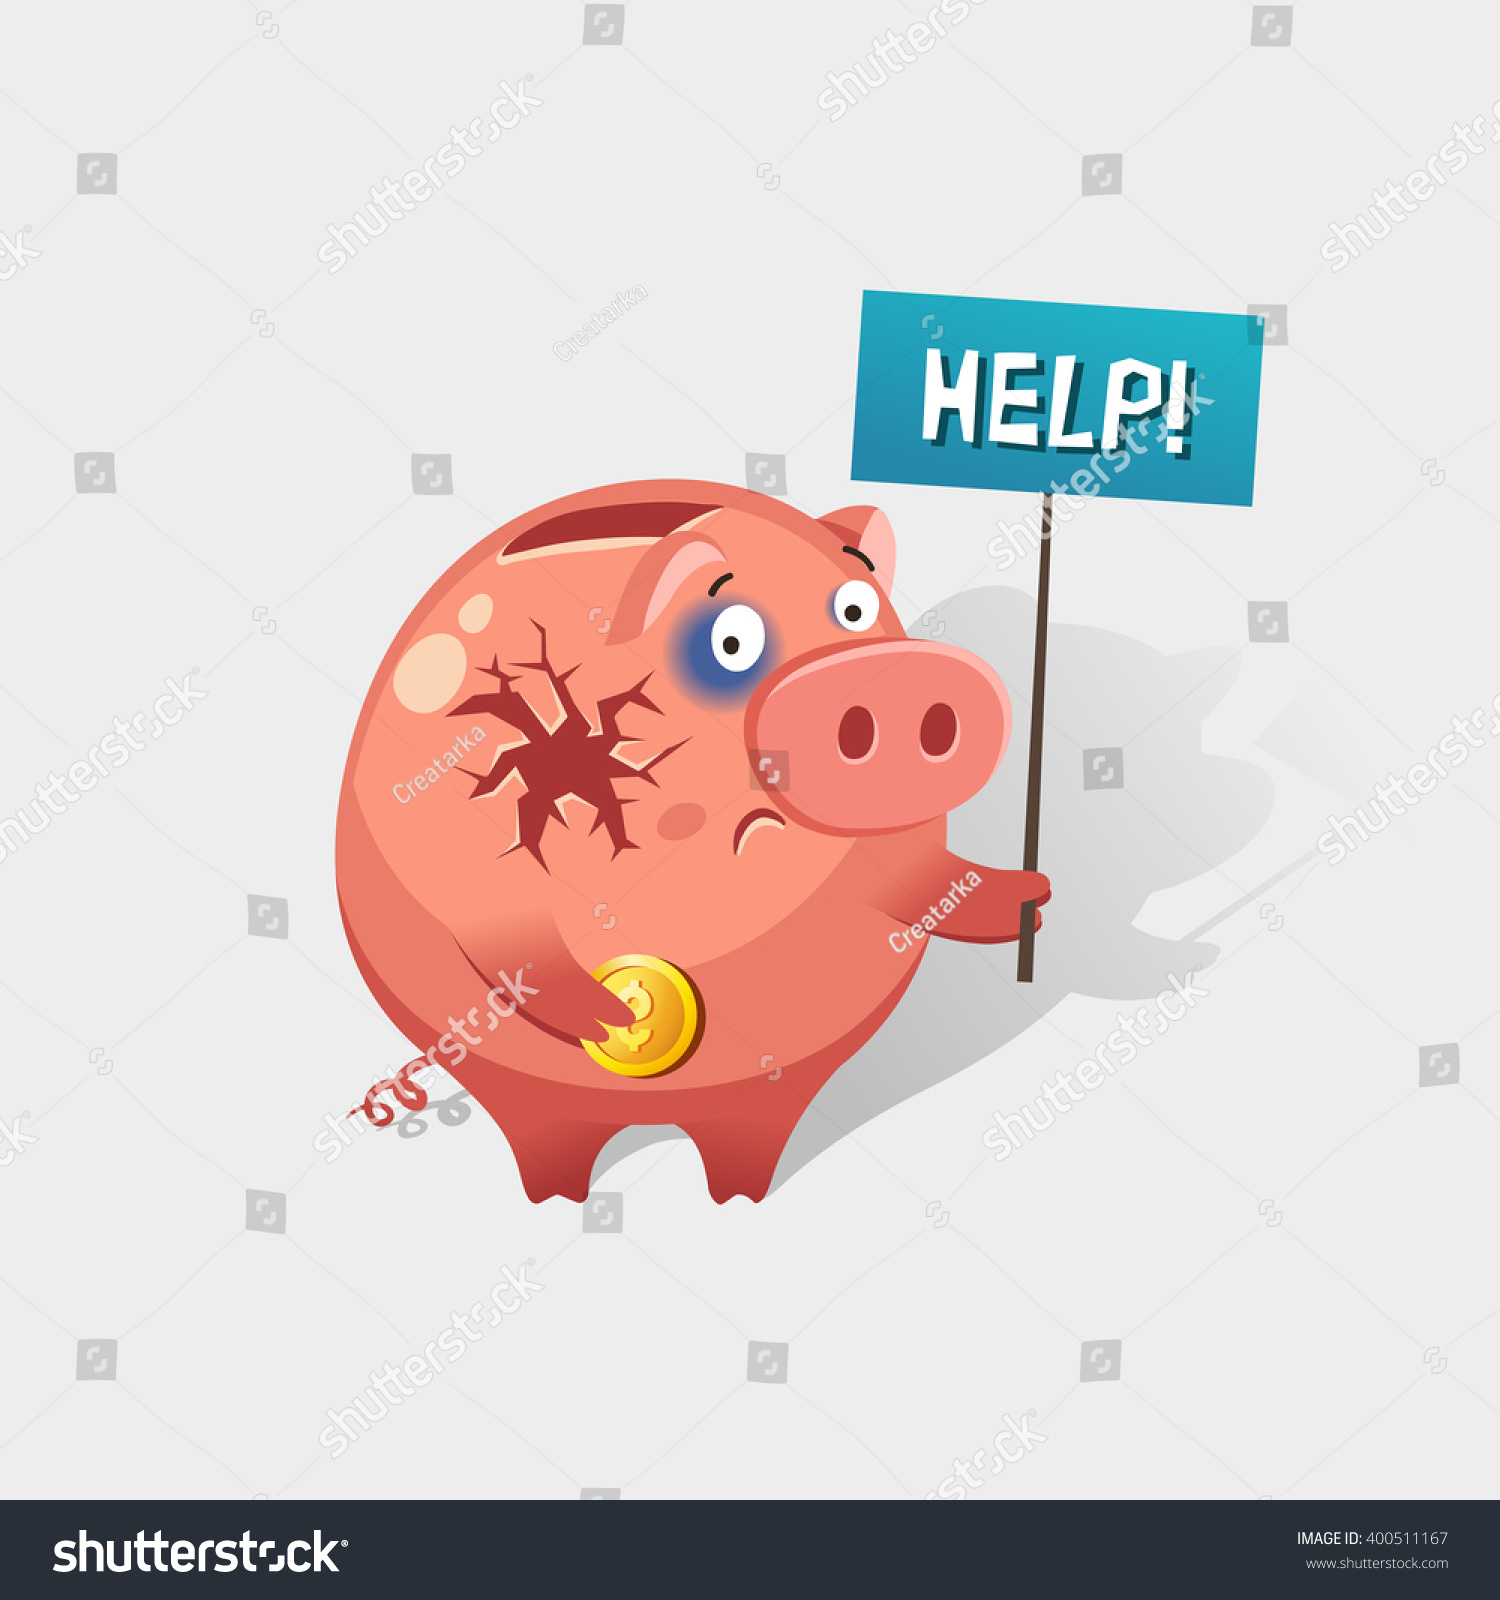 Men holding the word party concept 3d illustration stock photo - Broken Piggy Bank Holding The Word Help On Placard Financial Crisis Or Economic Depression Concept